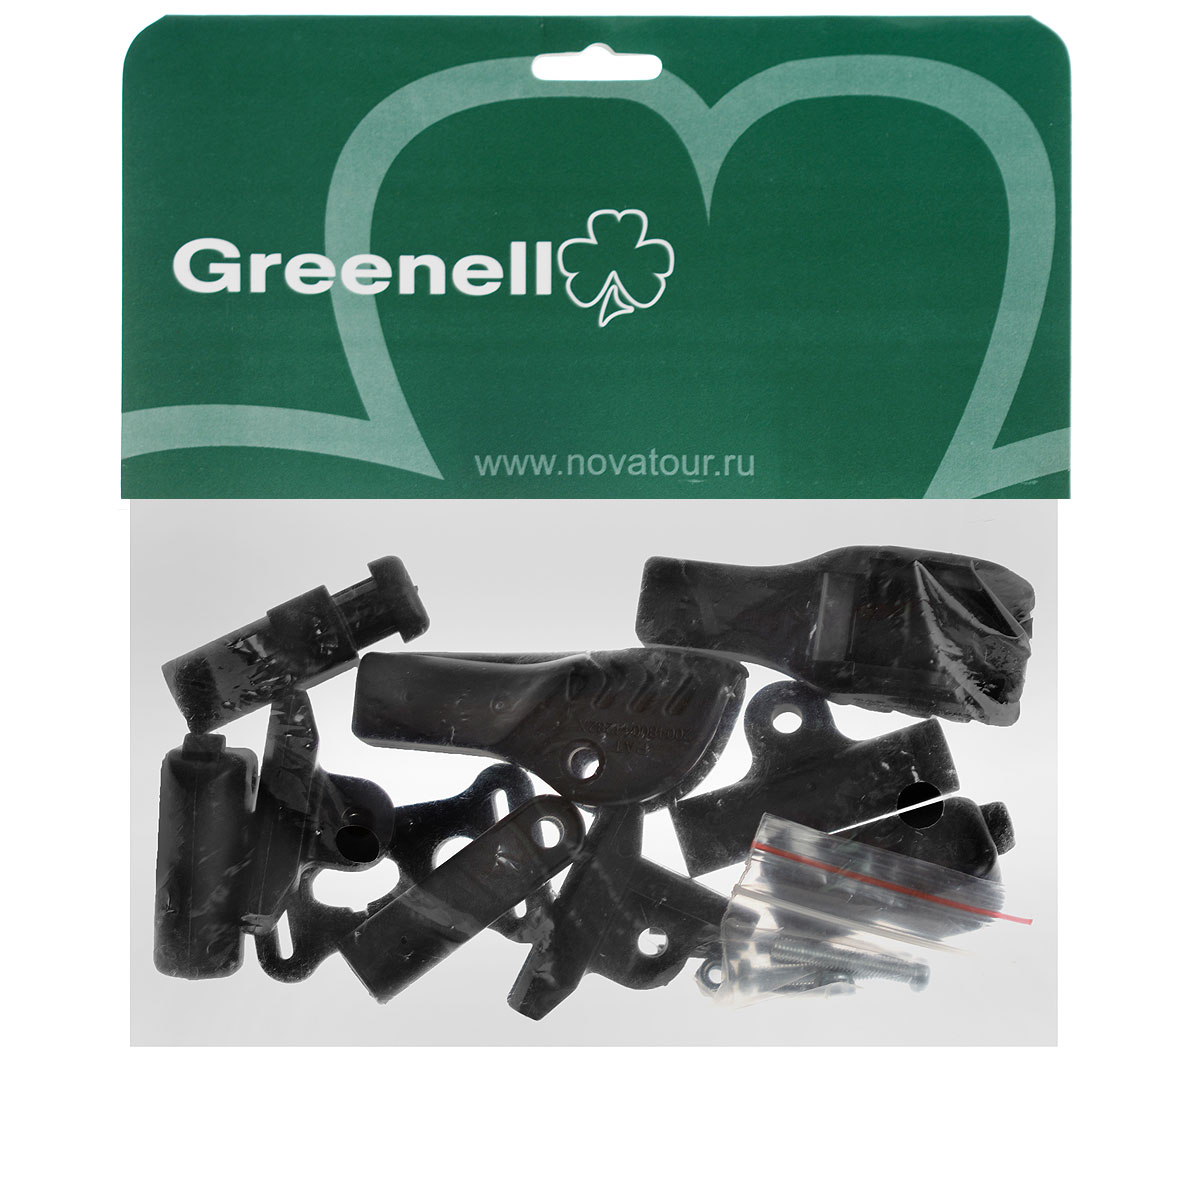 Ремкомплект Greenell №1, для палаток: Aughris 2, Castlerea 4, Clare 3, Dingle 3, Dingle light 3, Howth 4, Larne 2, Private, Tralee 2, Tralee 3 ipega pg 9017s wireless bluetooth 3 0 gamepad for android 3 2 ios 4 3 pc